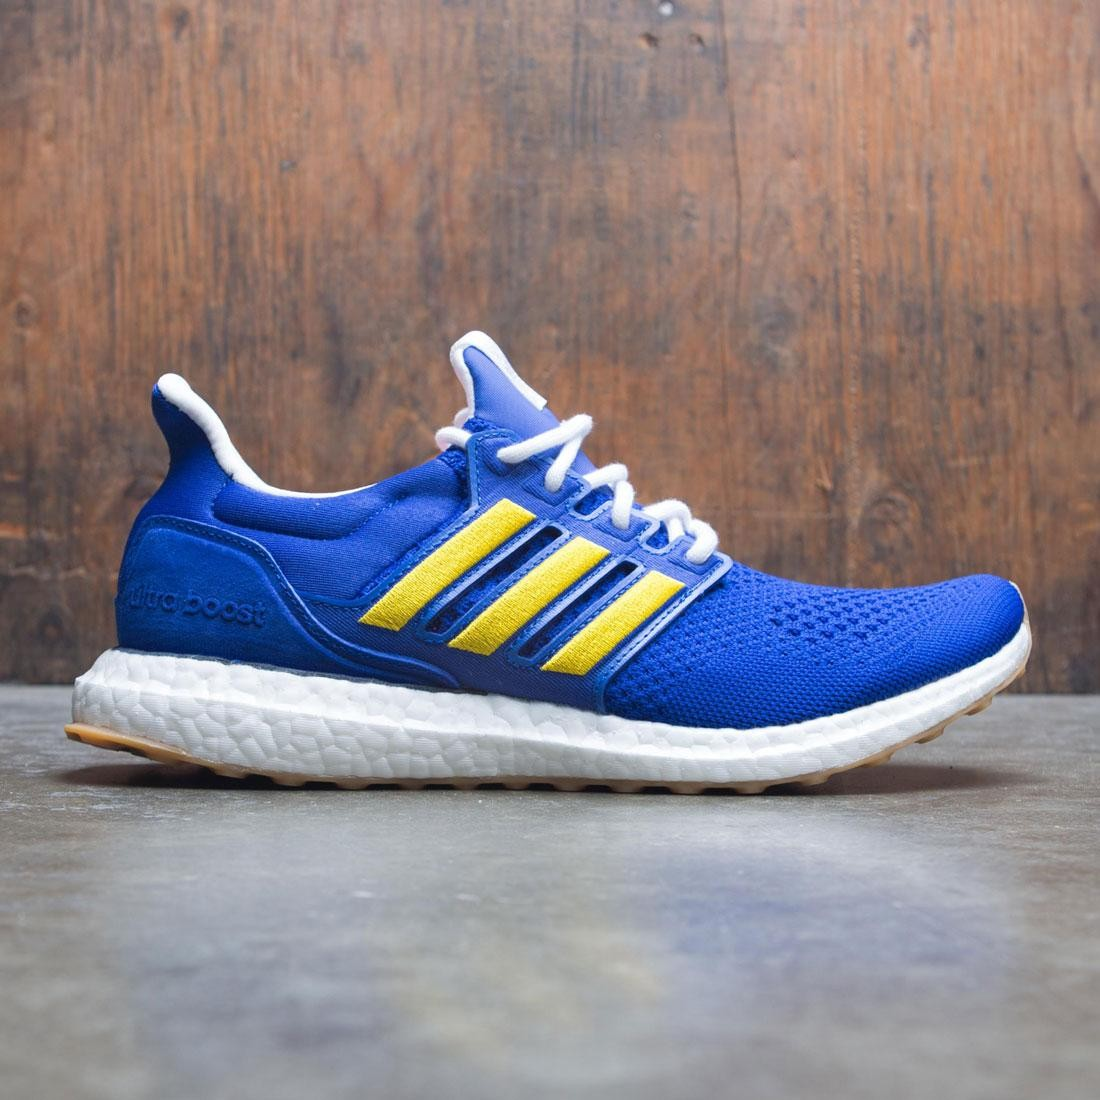 0a3396e63c7 Adidas Consortium x Engineered Garments Men UltraBOOST blue bold blue red  wonder glow